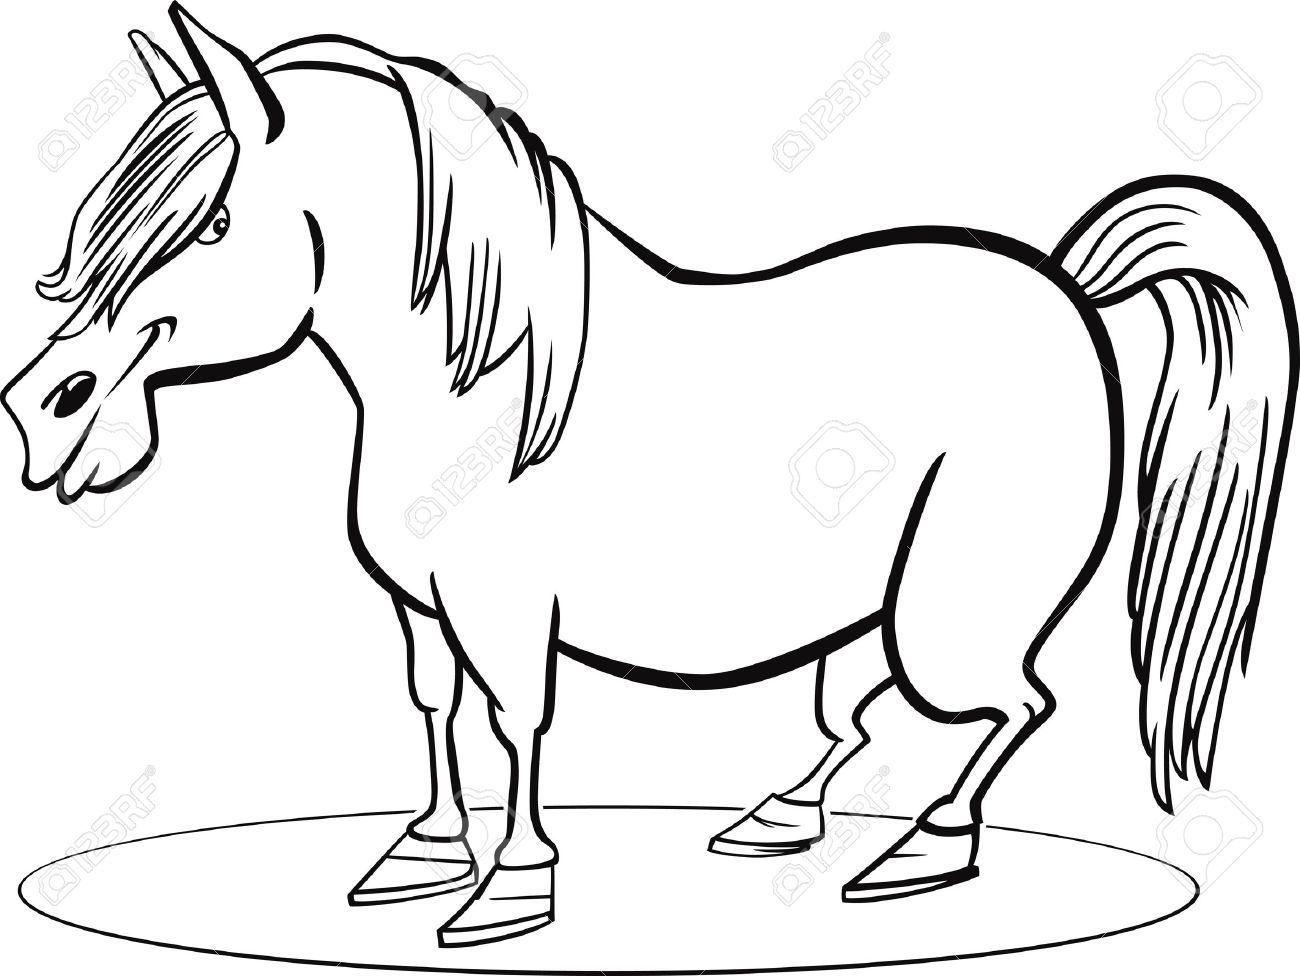 coloring page illustration of farm pony horse royalty free